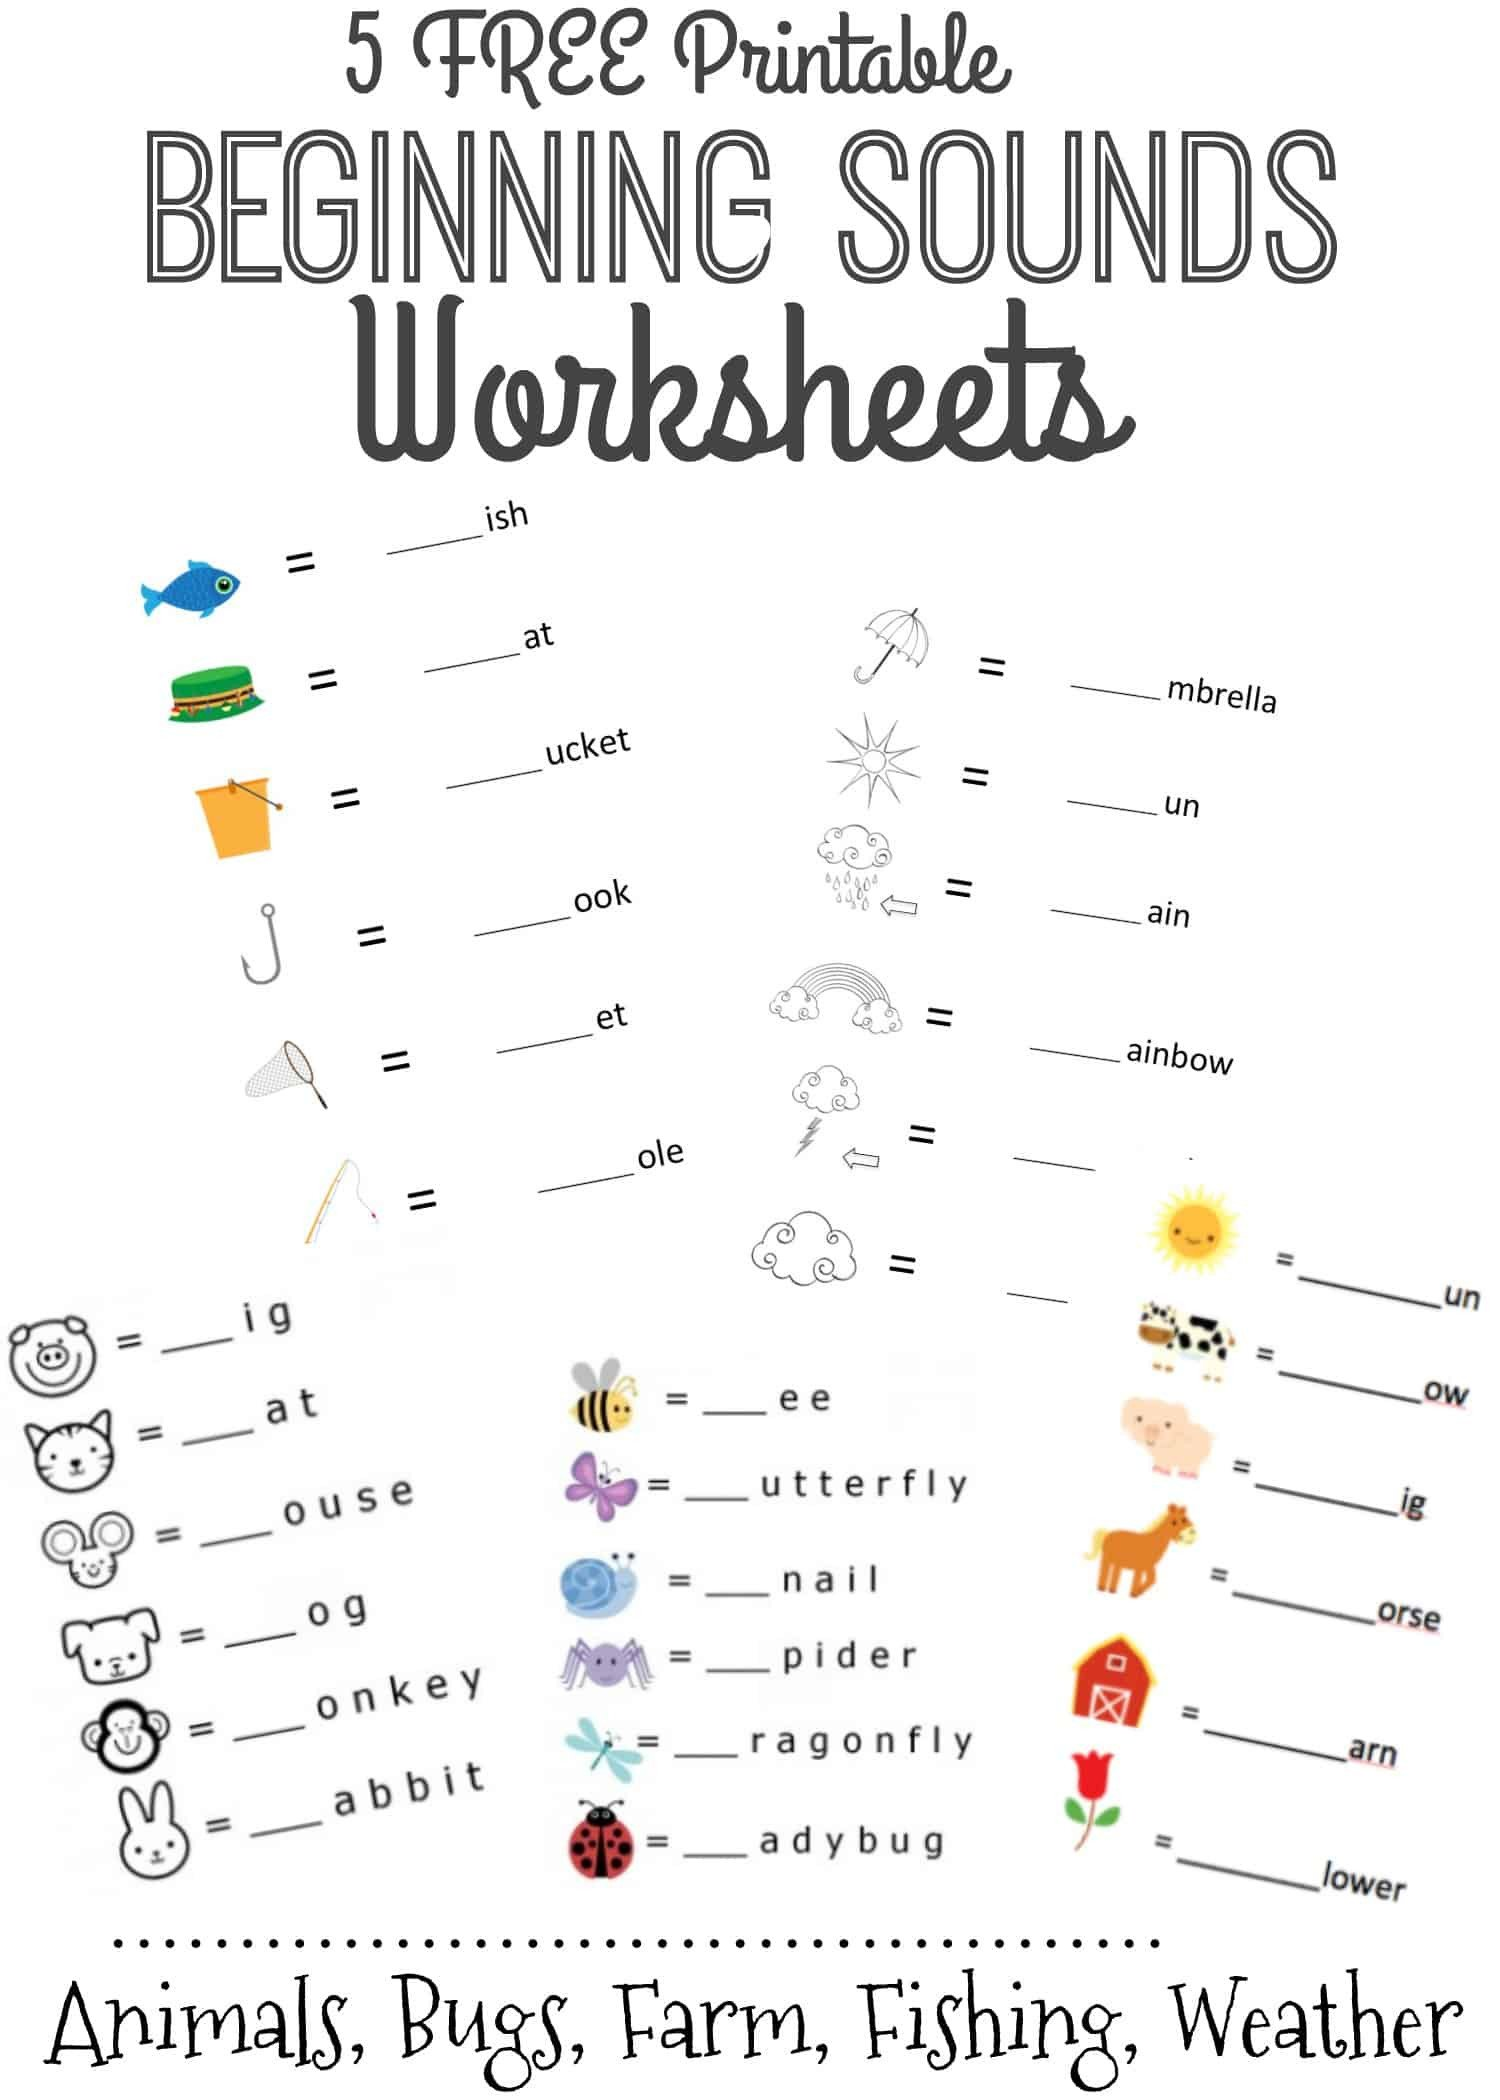 Kindergarten Phonics Worksheets Beginning sounds Beginning sounds Letter Worksheets for Early Learners